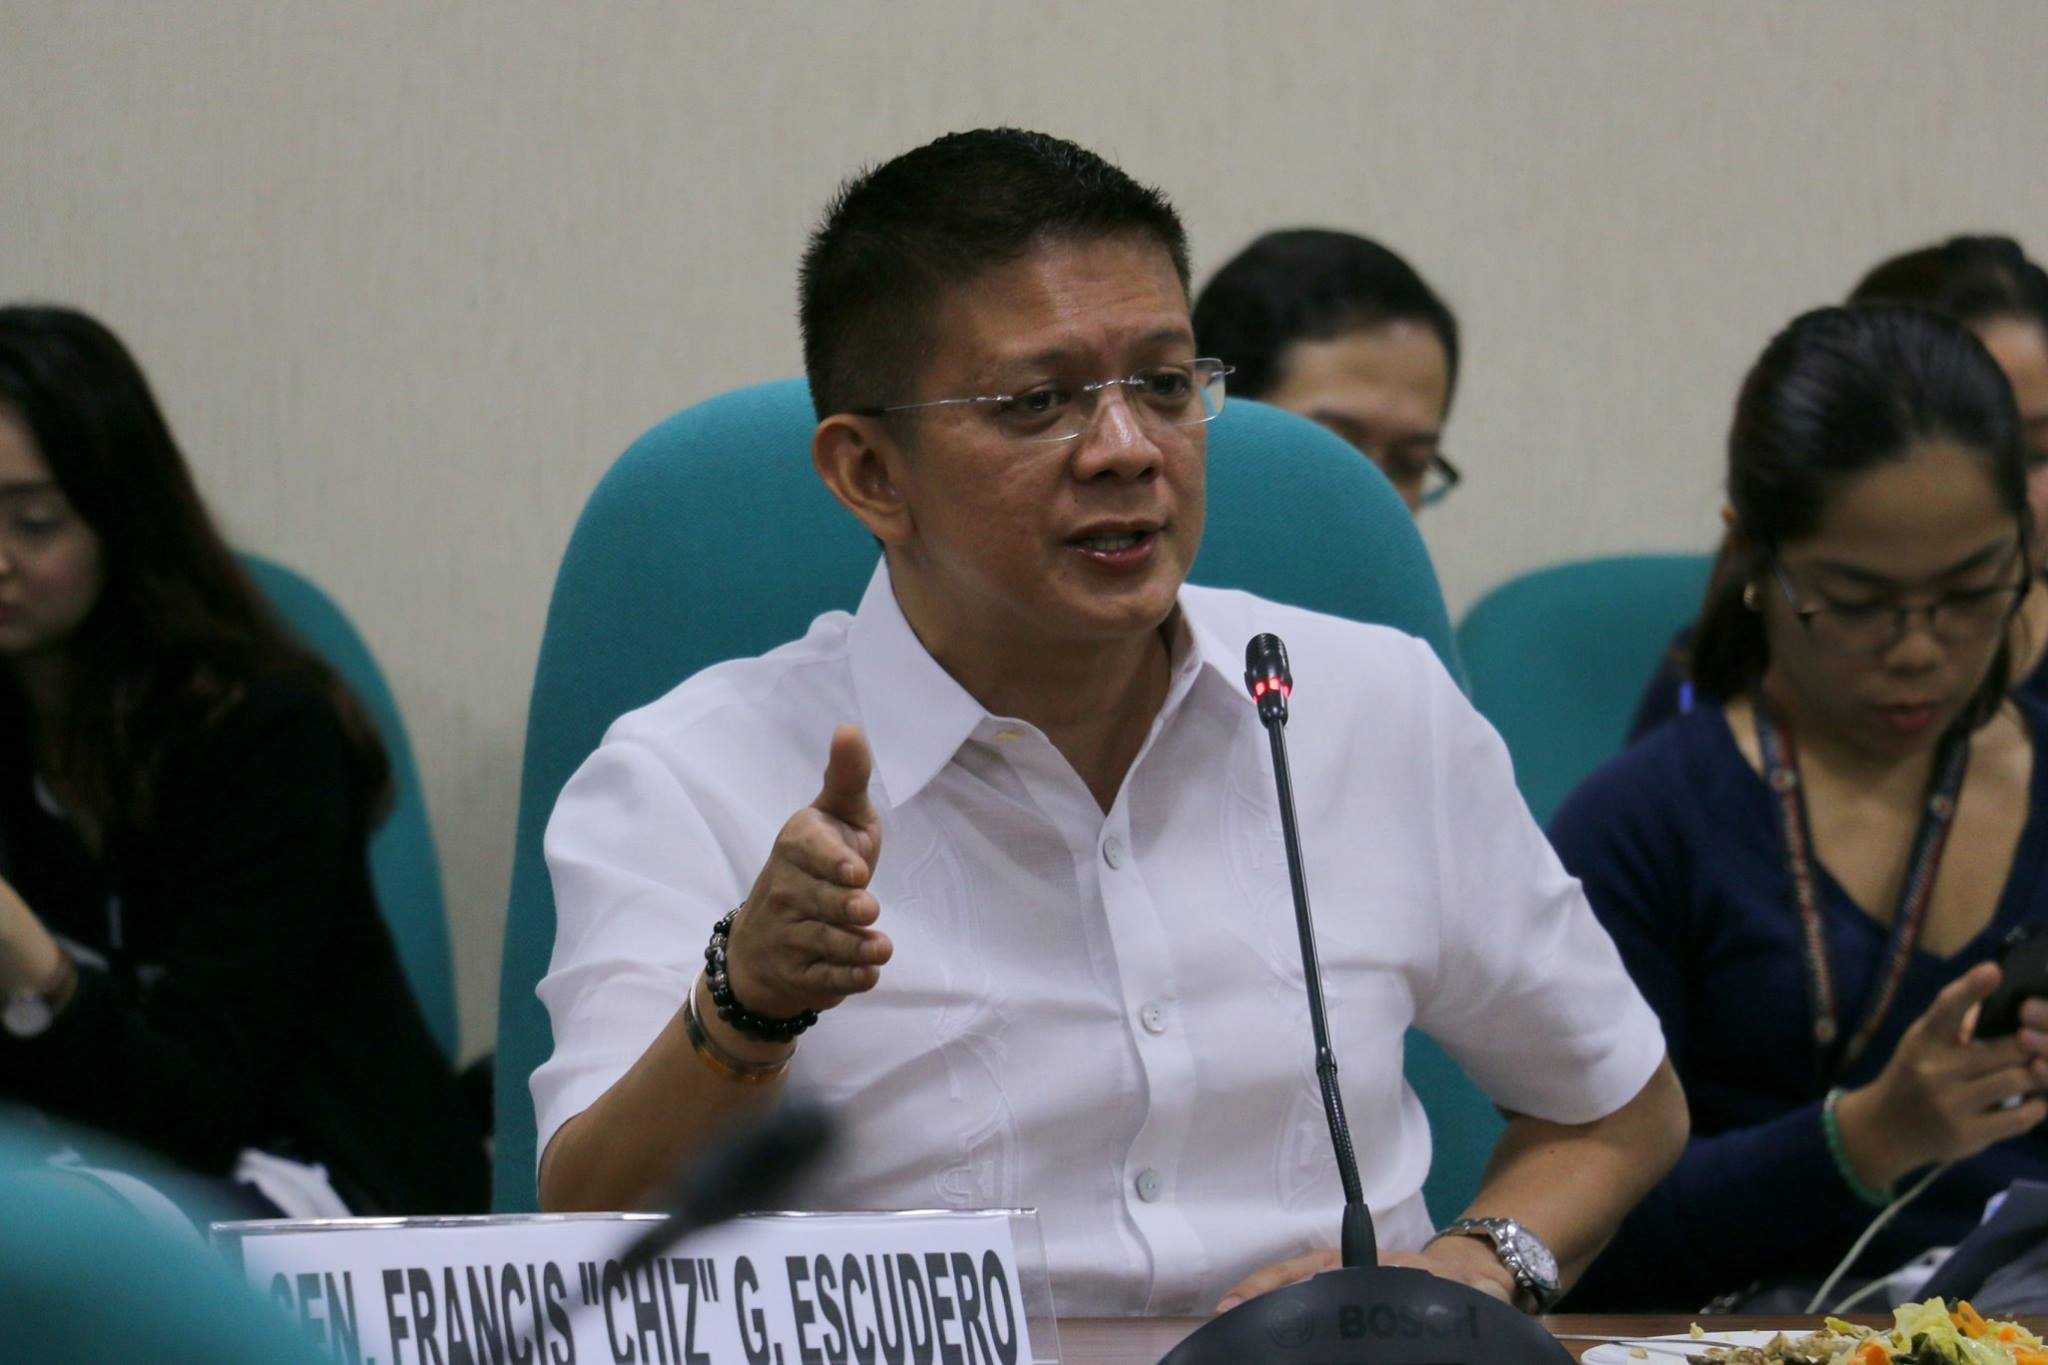 Sen. Francis Escudero on Wednesday said that he did not move to have the University of the Philippines (UP) offer Pres. Rodrigo Duterte an honorary doctorate degree. (Photo: Francis Chiz Escudero/Facebook)